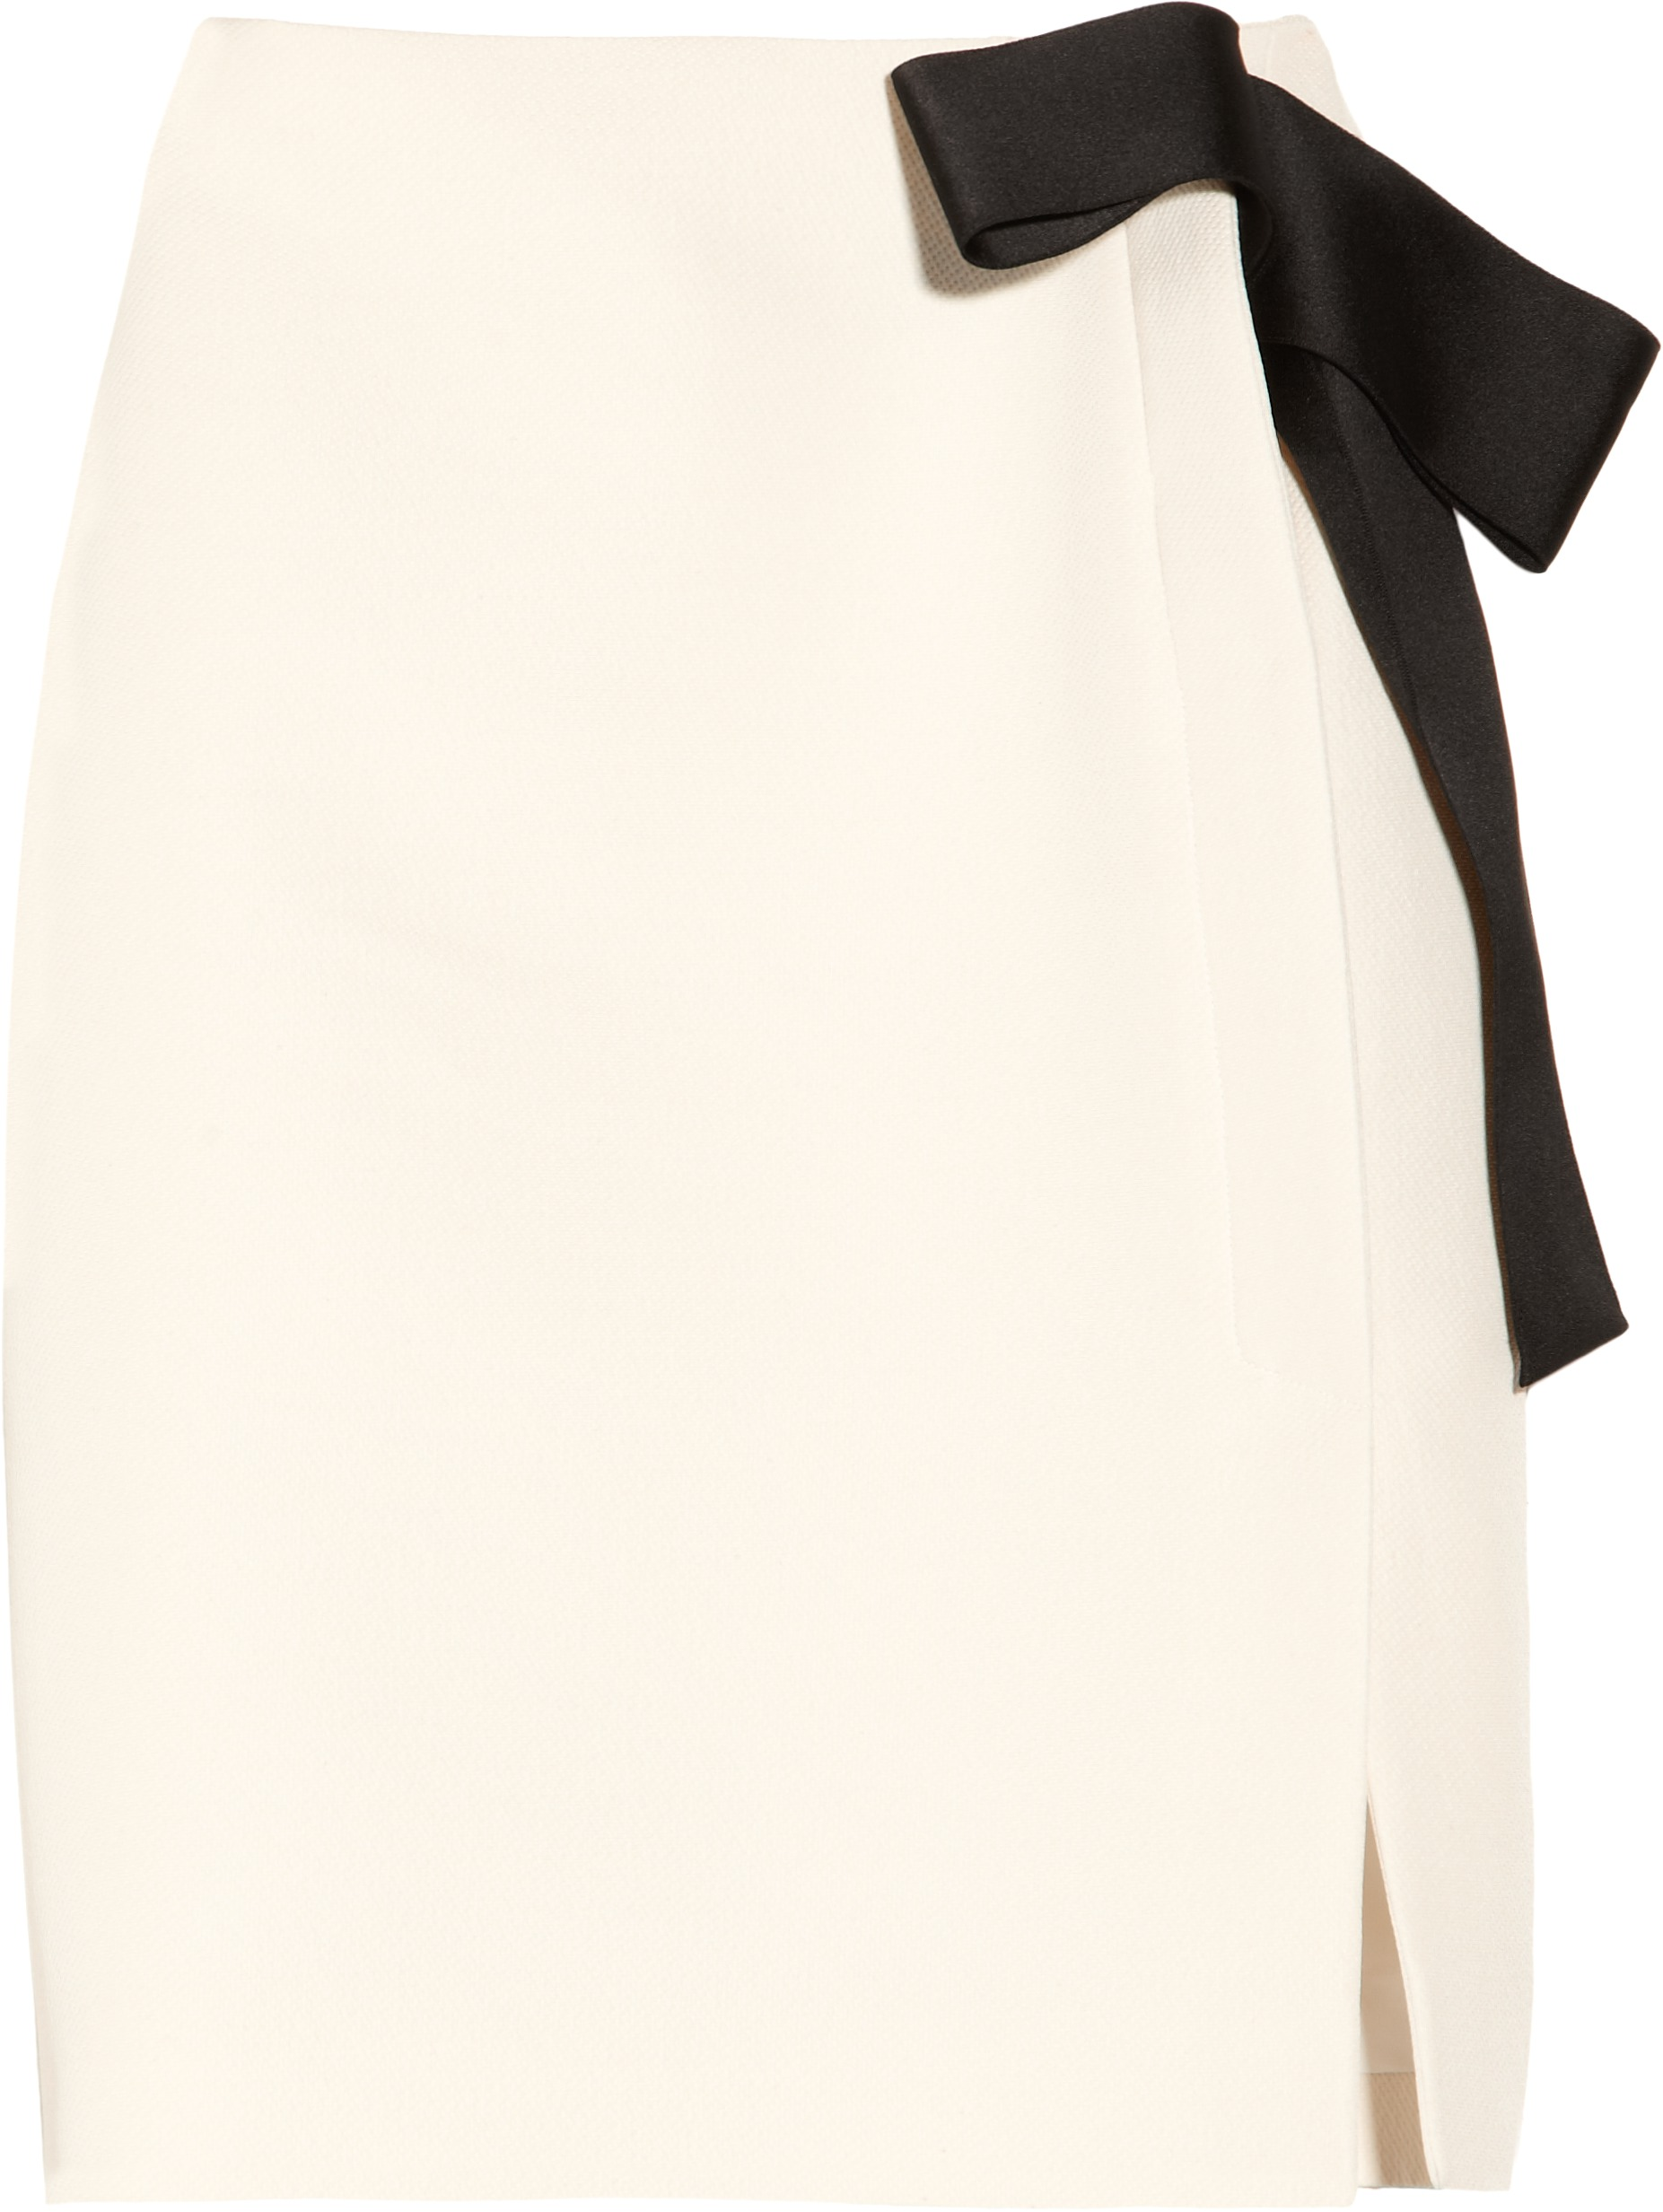 349496_Lanvin_Bow-embellished piqu+¬ pencil skirt_THEOUTNET.COM.jpg